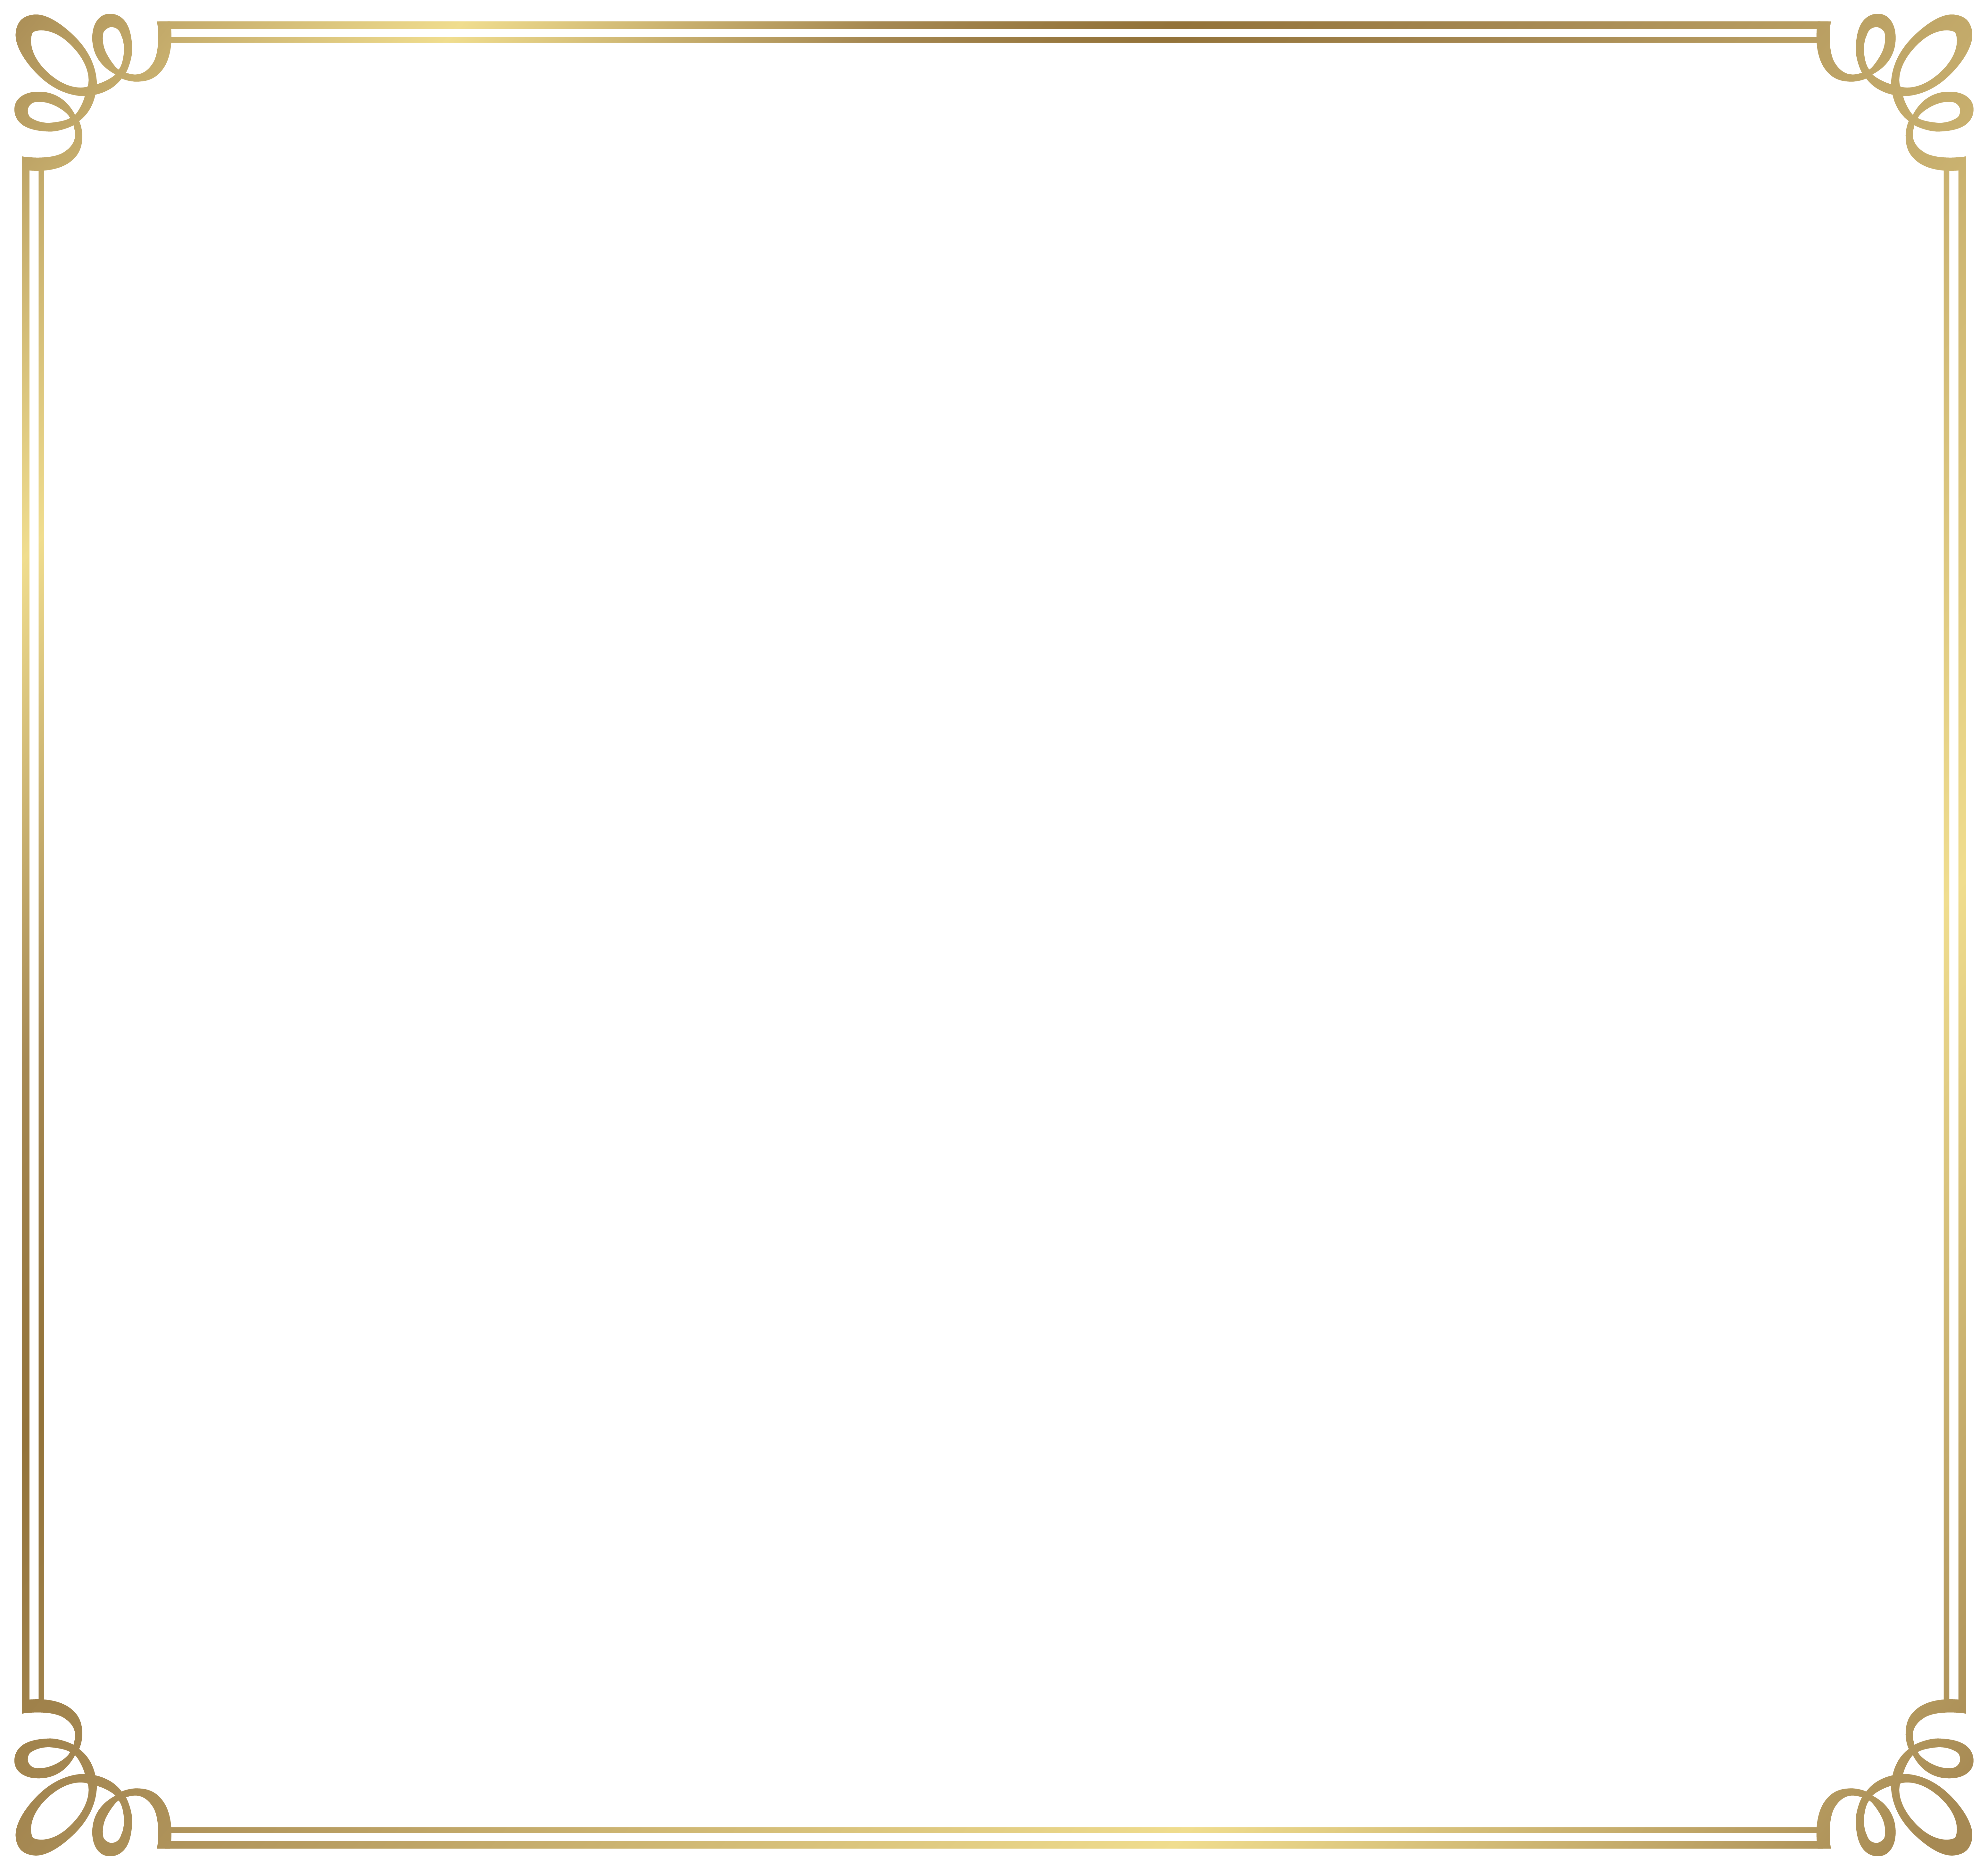 6204x5835 Decorative Frame Border Png Clipart Imageu200b Gallery Yopriceville